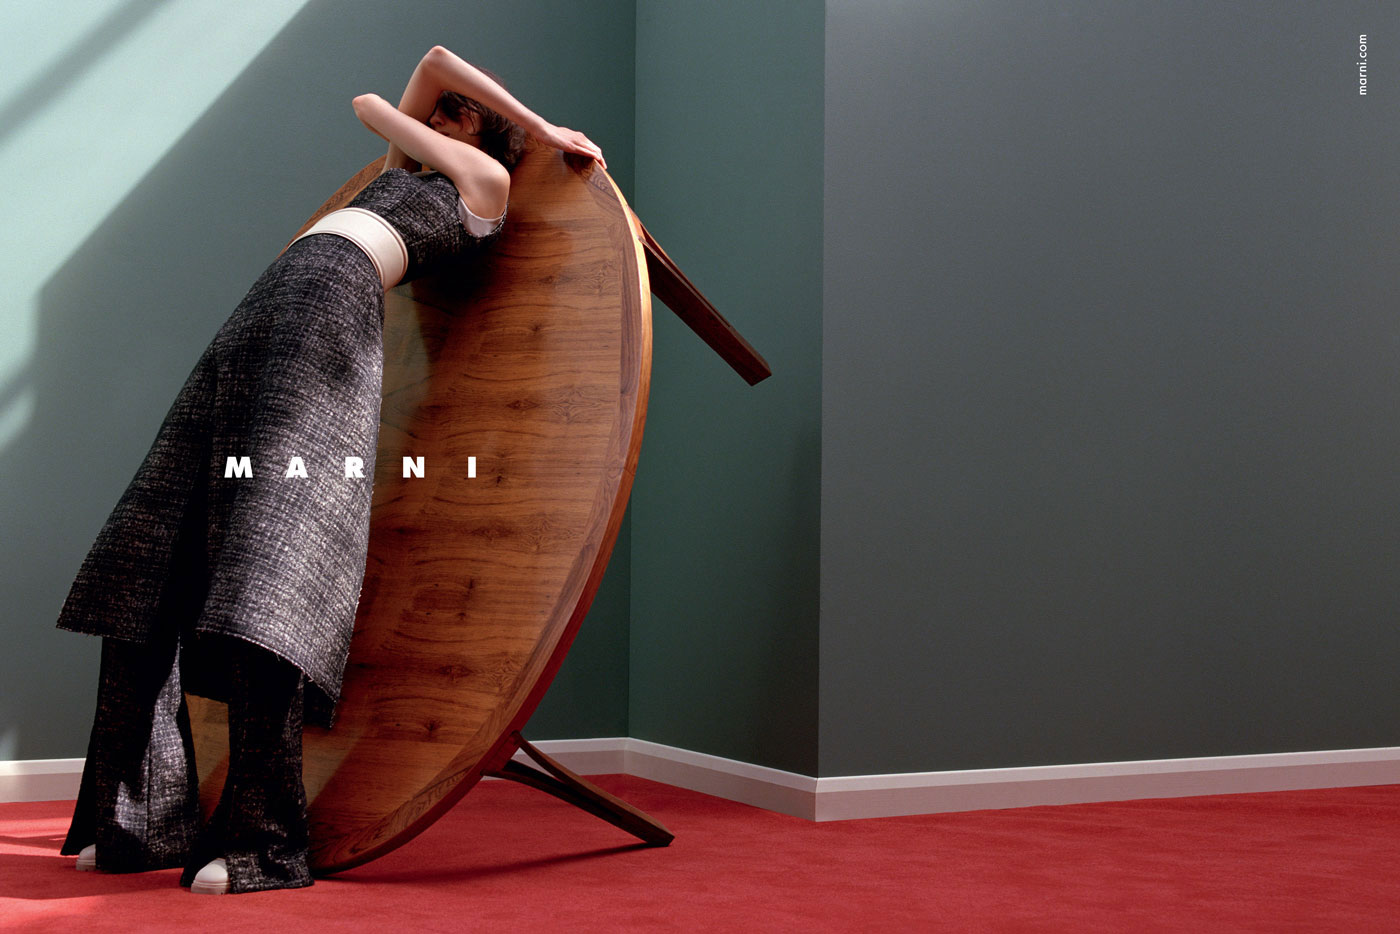 Marni AW 2015-16 Campaign. Photo by Jackie Nickerson | Yellowtrace